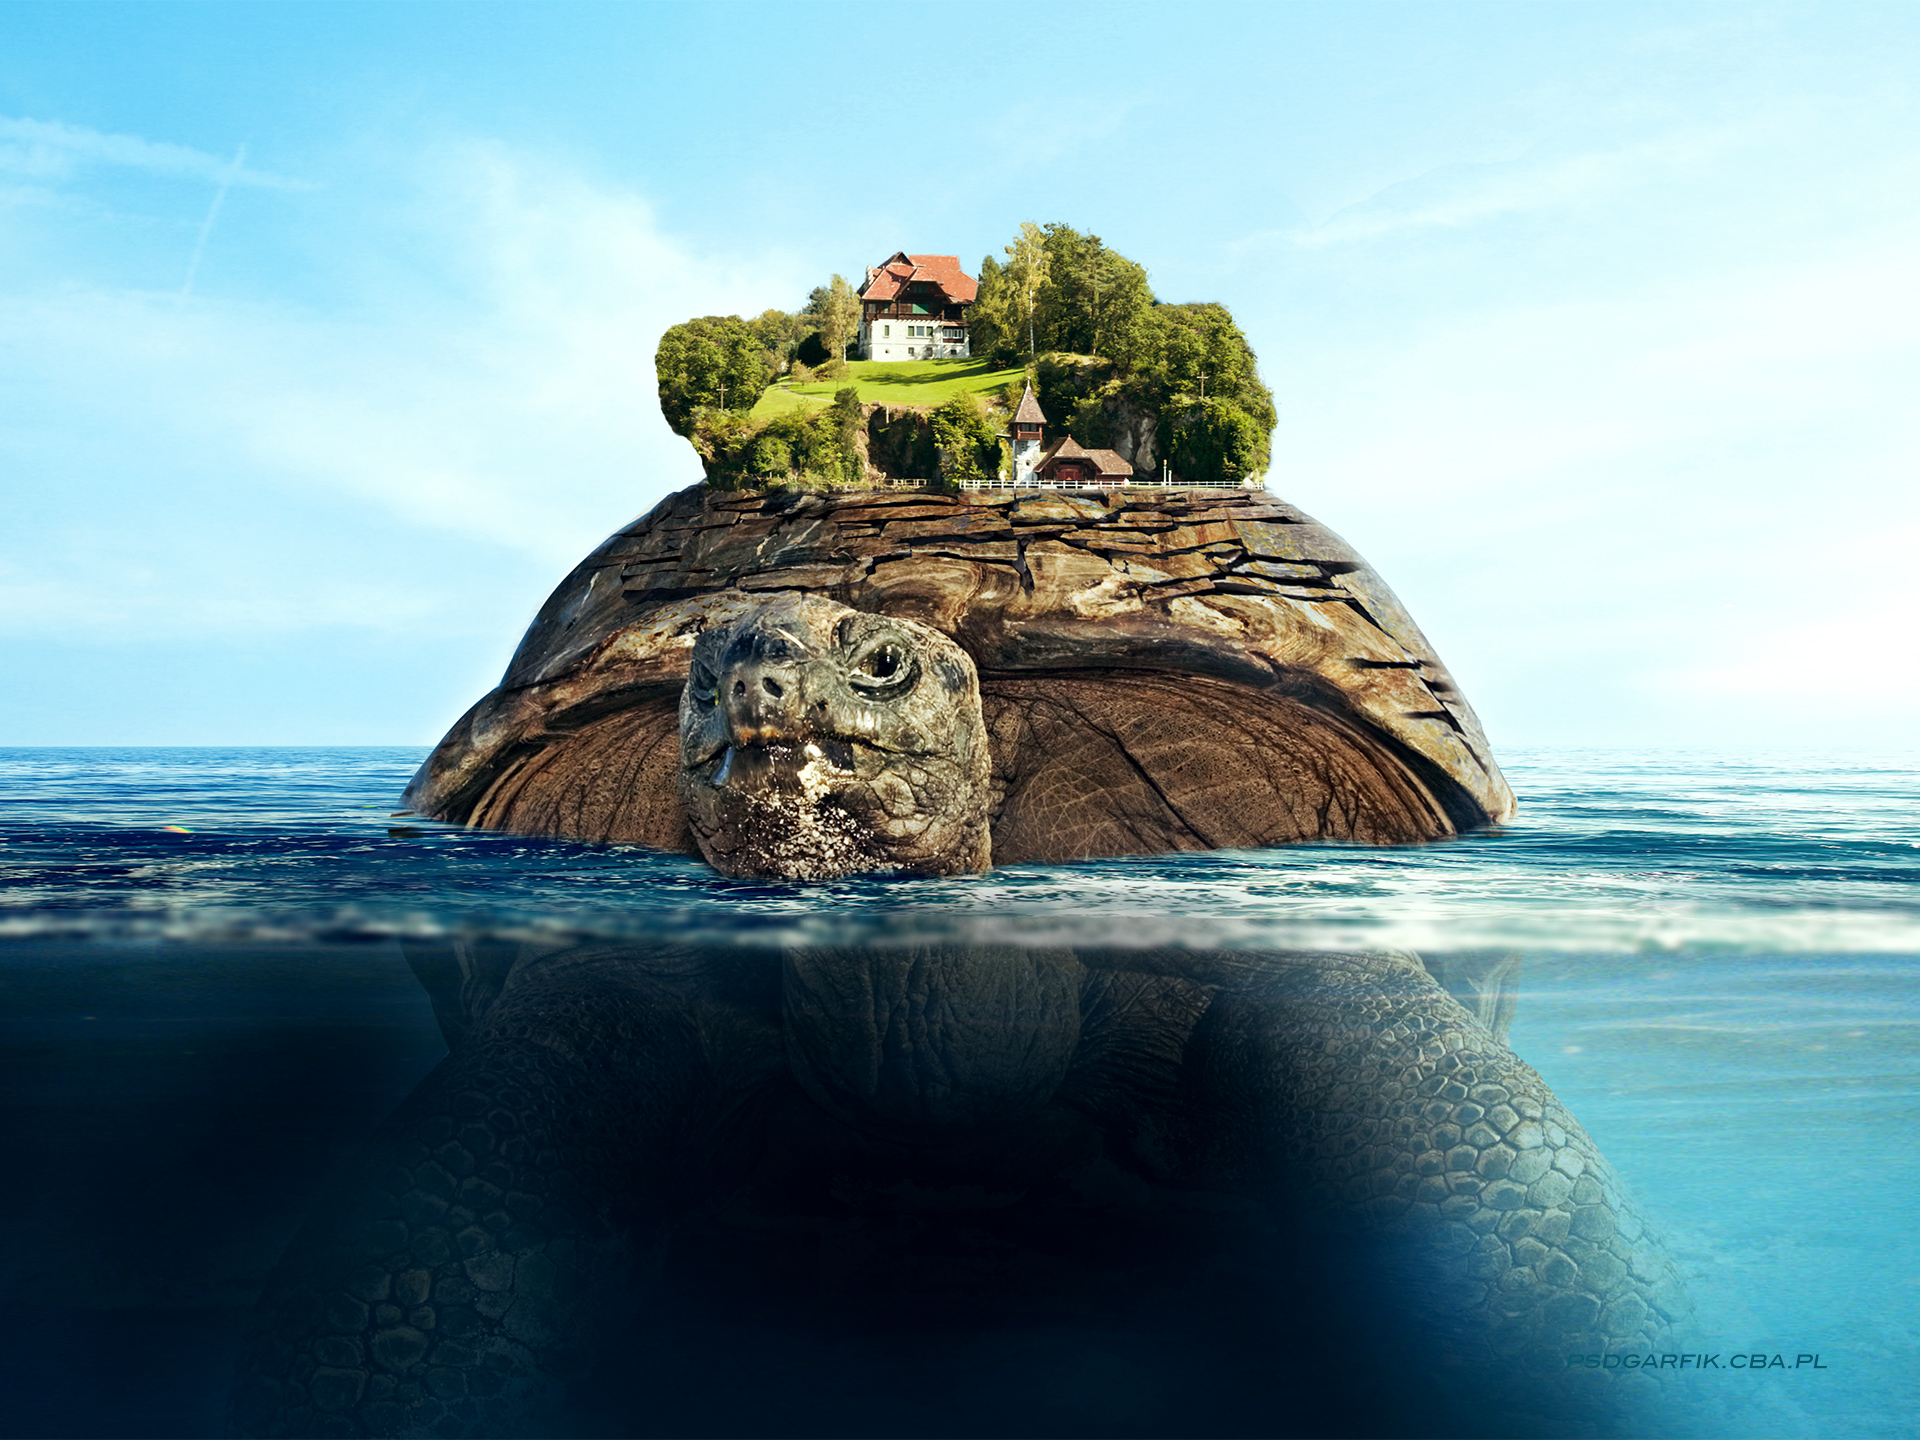 1920x1440 Floating island desktop PC and Mac wallpaper 1920x1440